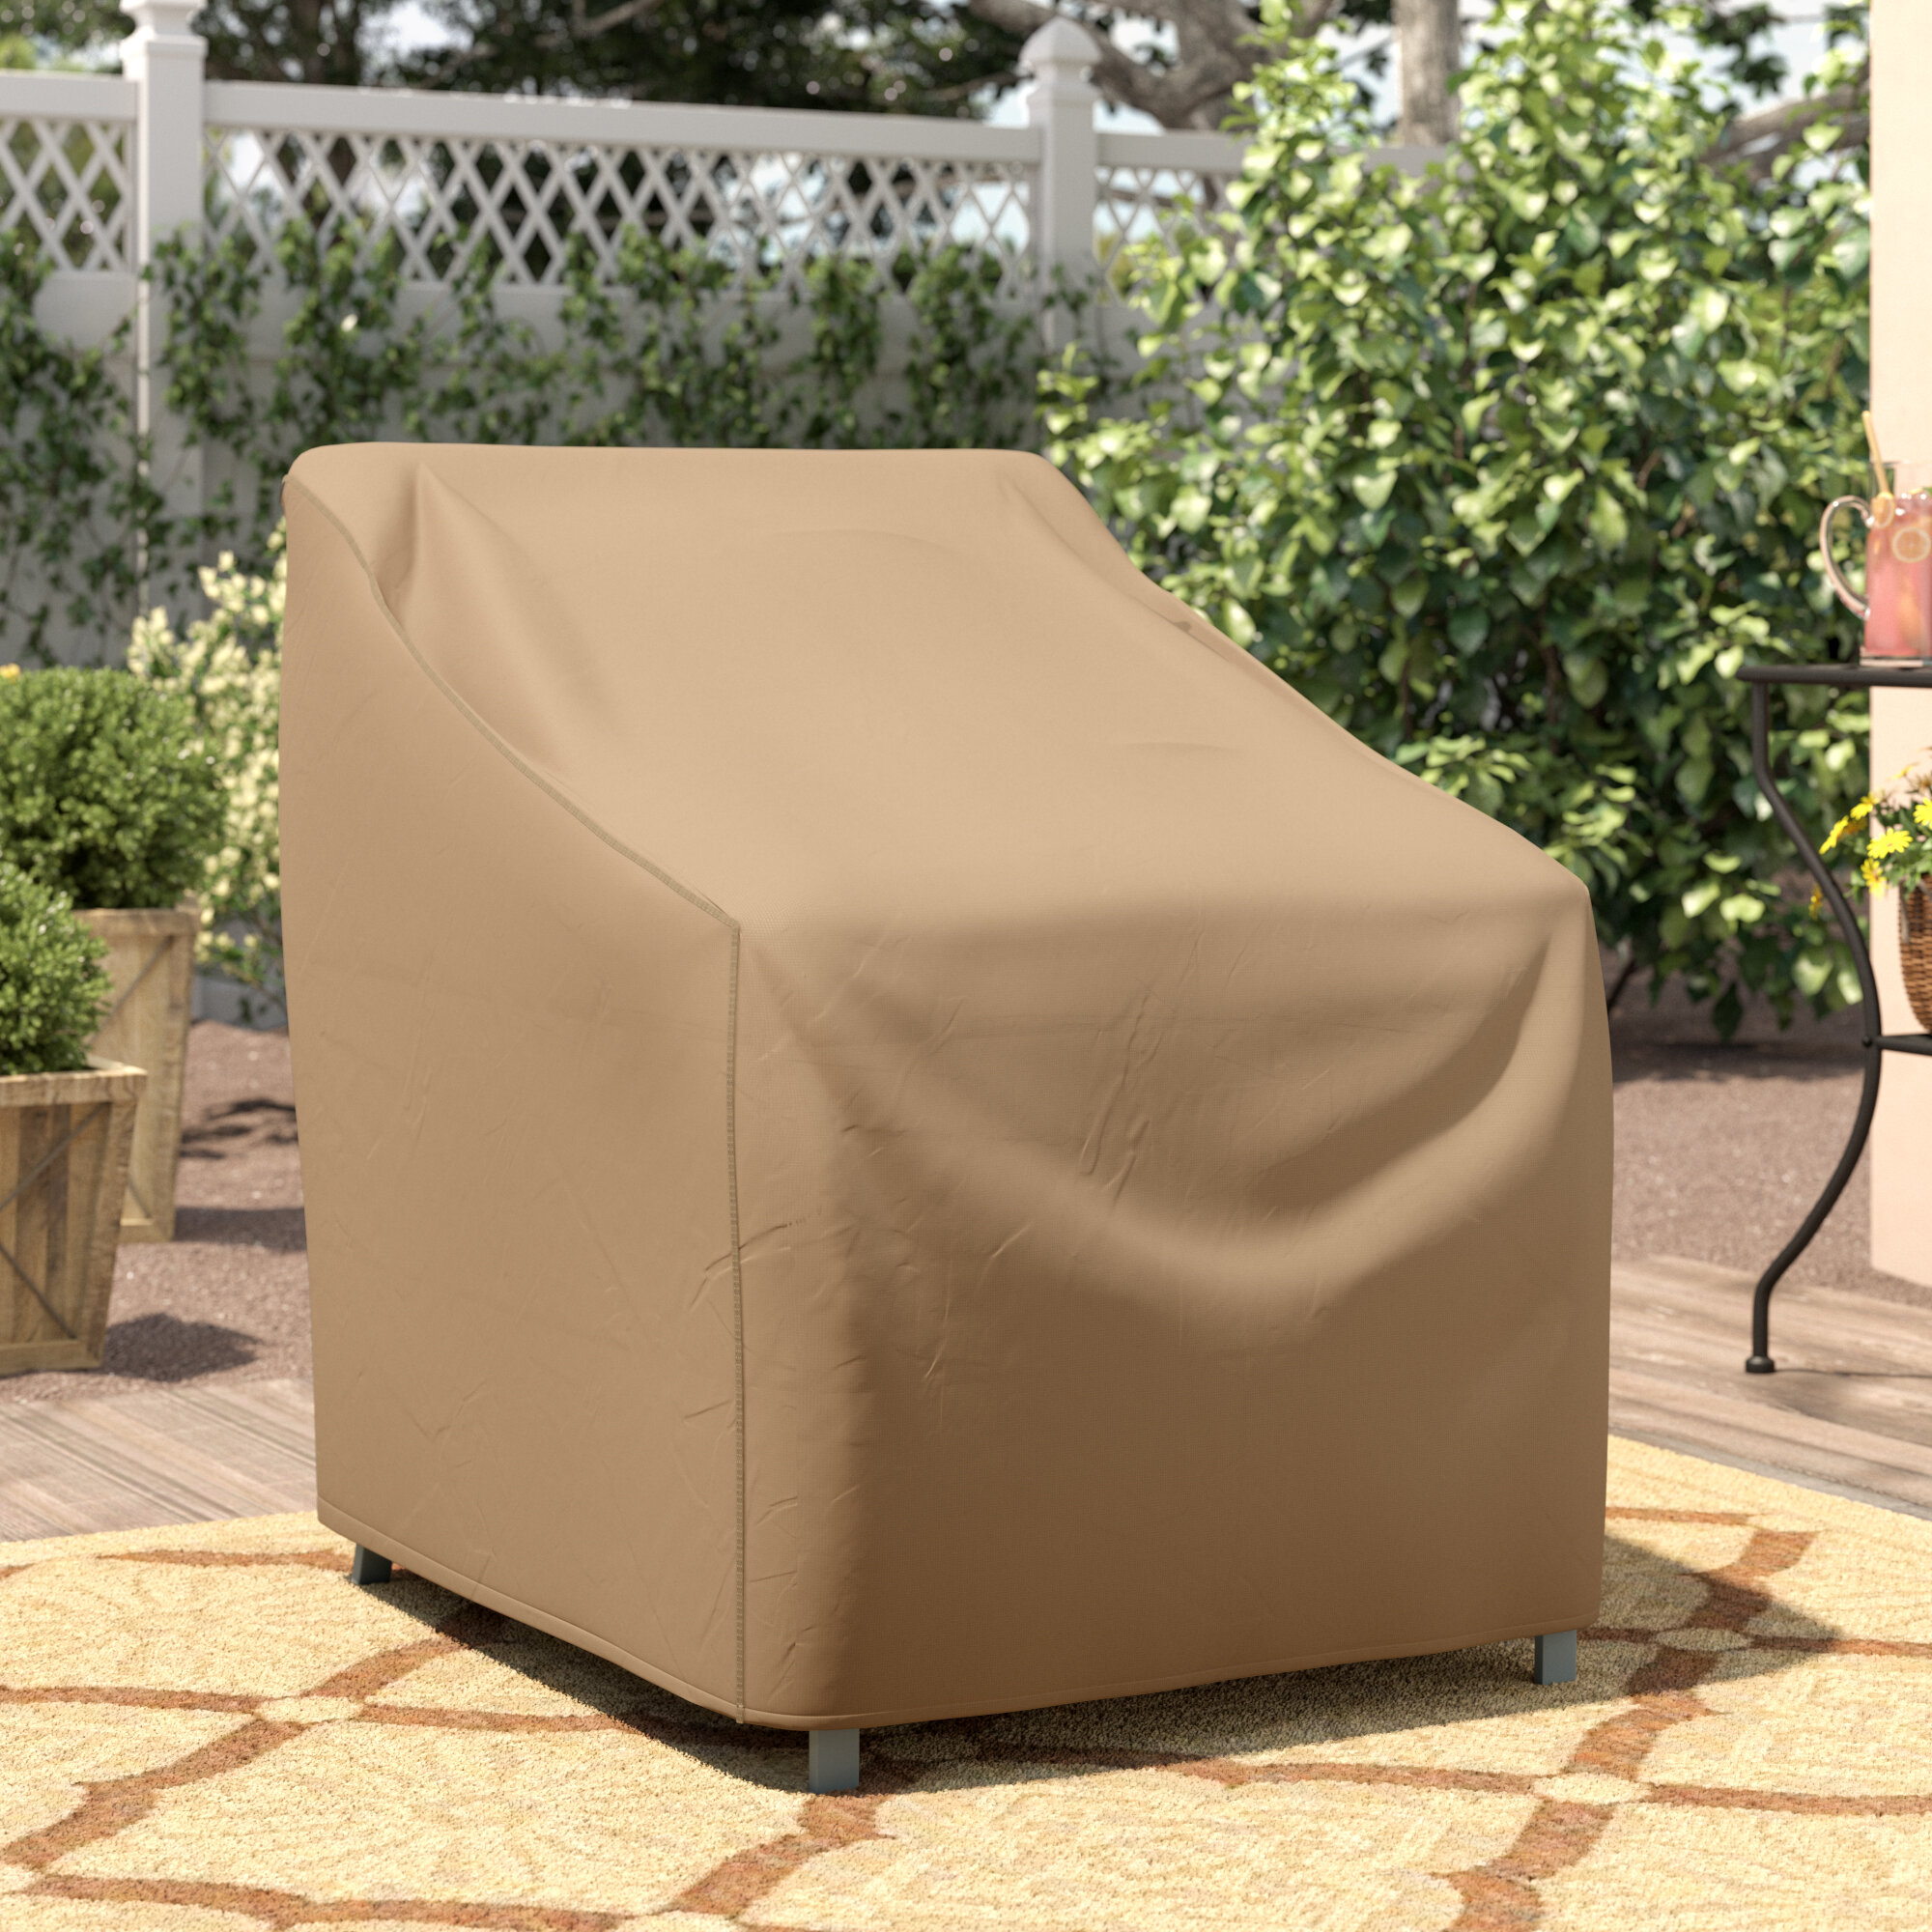 Wayfair Basics Patio Chair Cover With Tie Fastener In 36 H X 32 W X 37 D regarding proportions 2000 X 2000